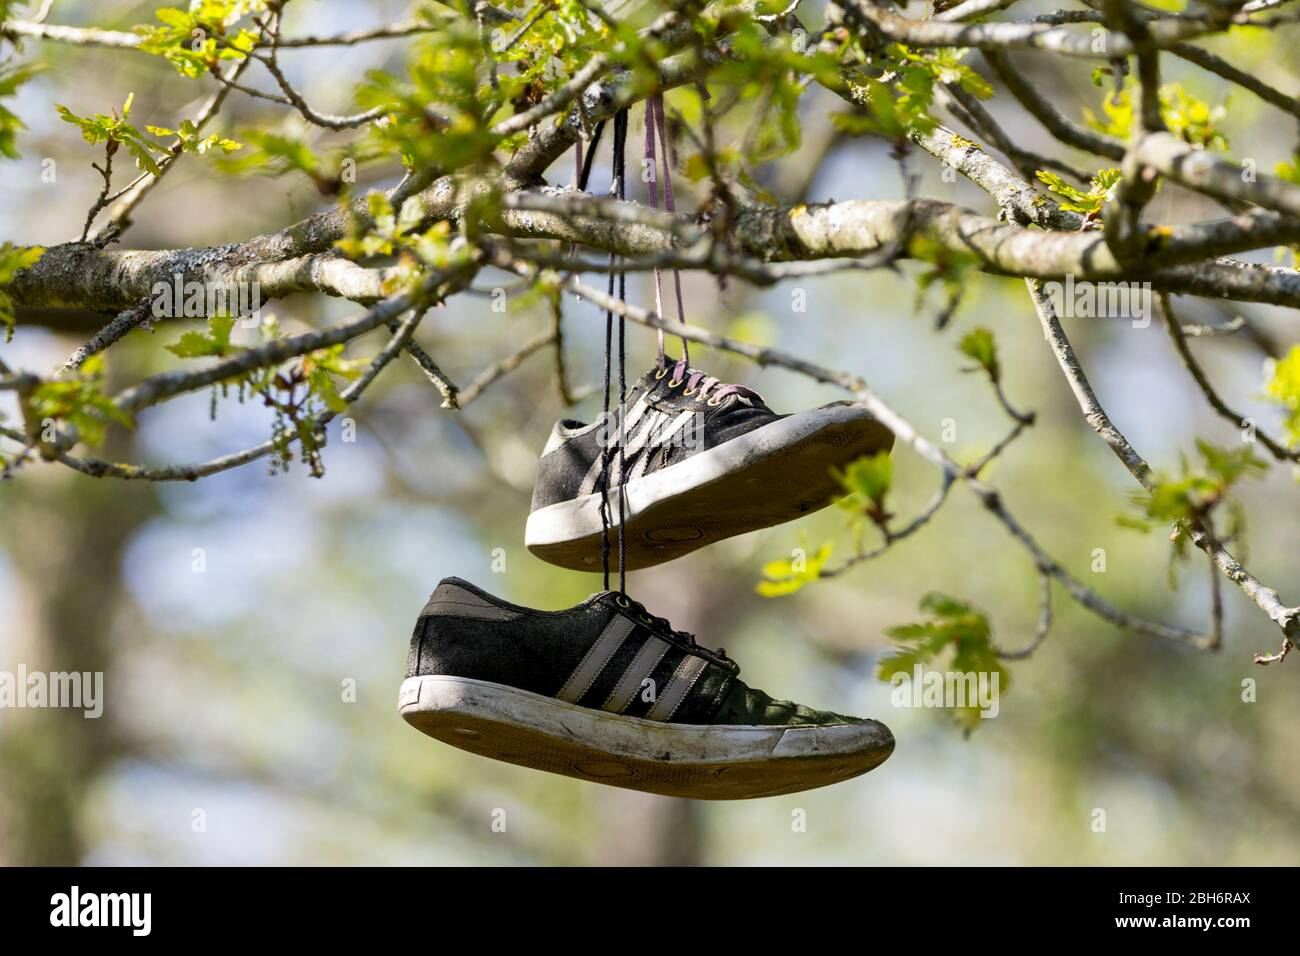 Plimsoll style trainers black and white